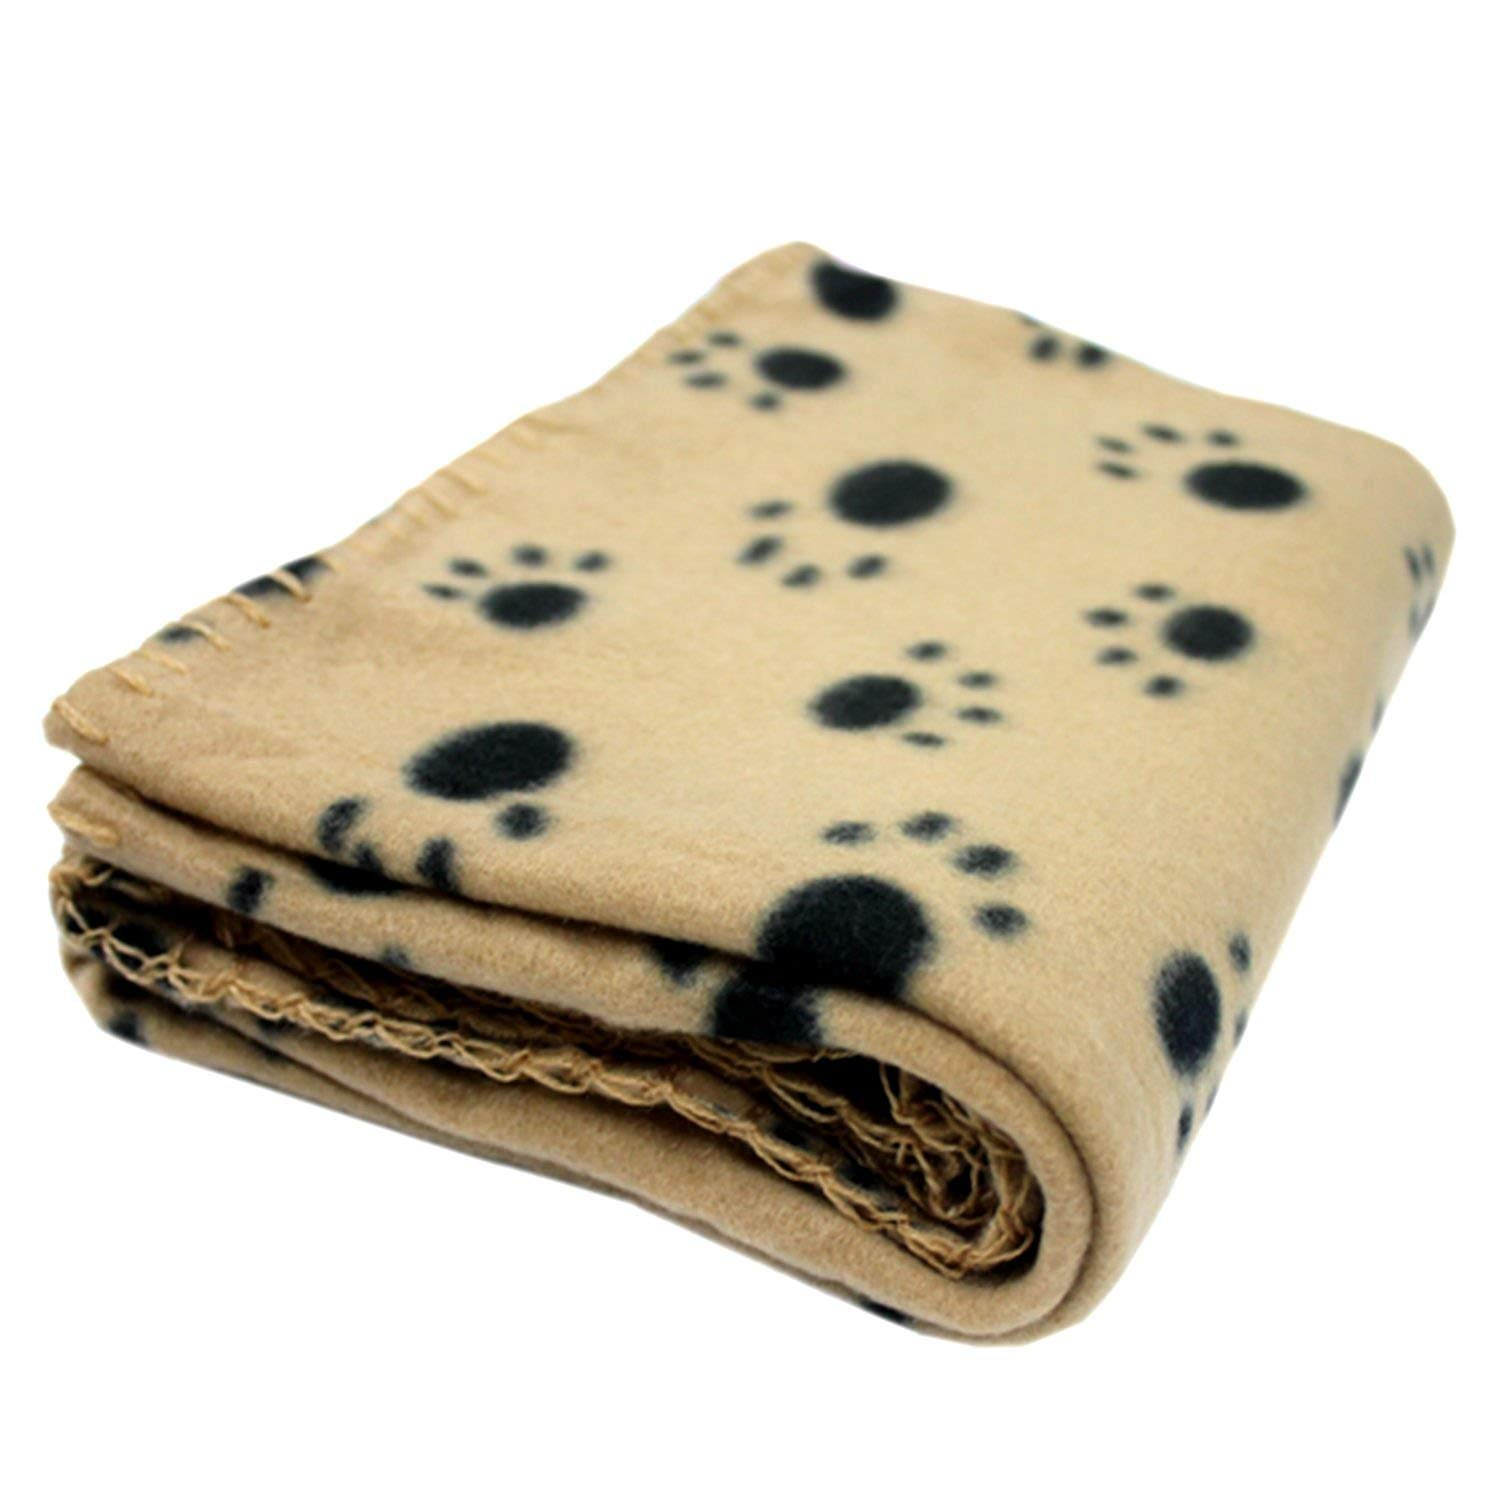 ANDRE HOME Soft Fleece Pet Blanket for Cat and Dog Paw Printed Small and Medium (60x70cm, Brown) Pet Bed Blanket